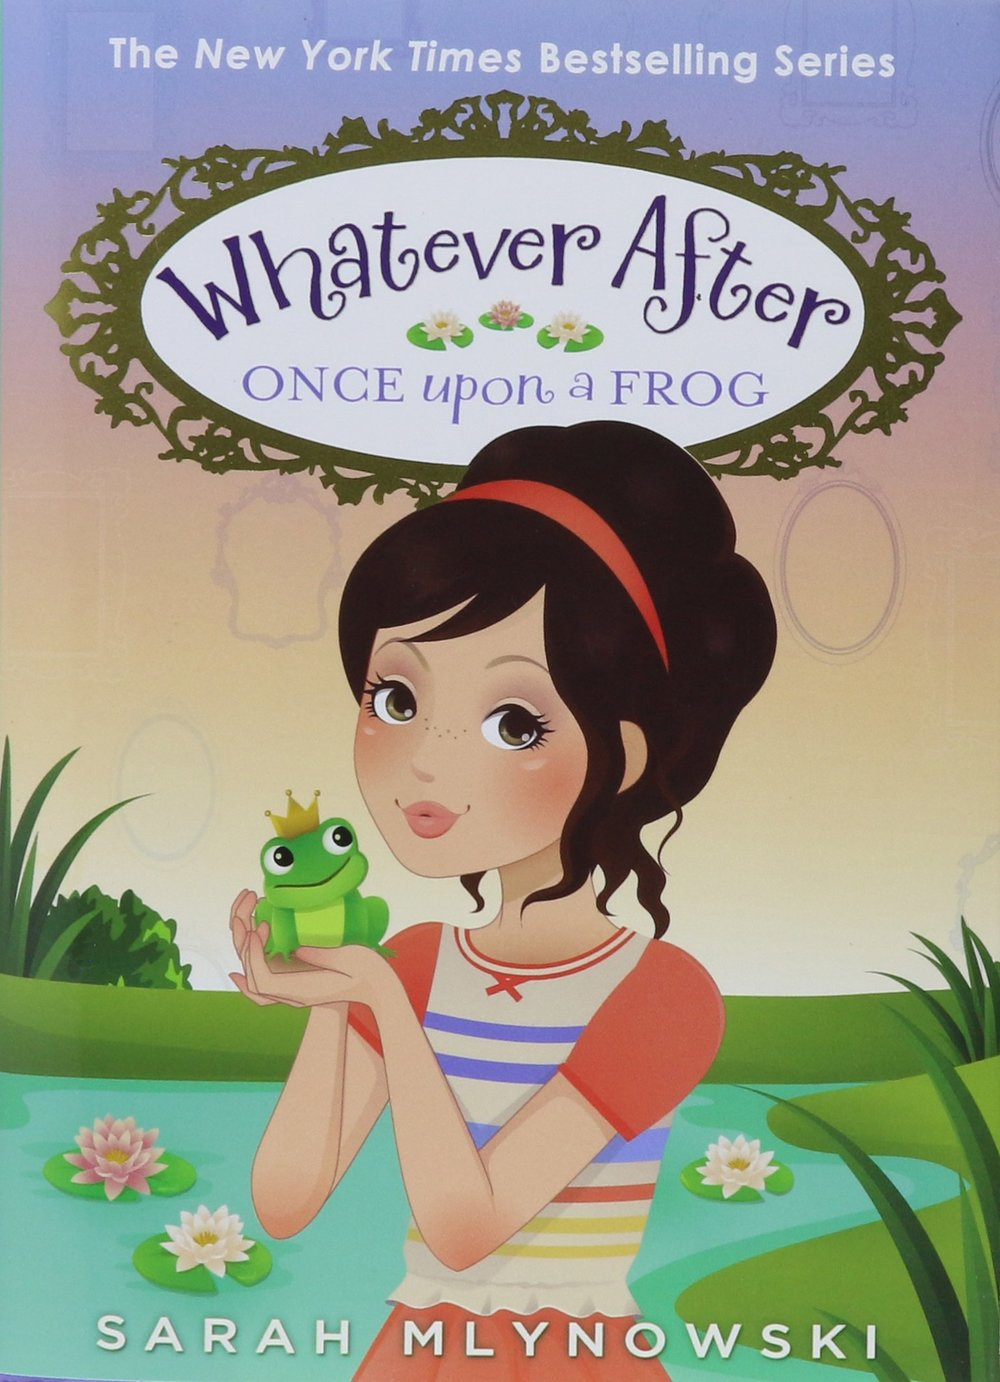 sarah-mlynowski-whatever-after-once-upon-frog.jpg